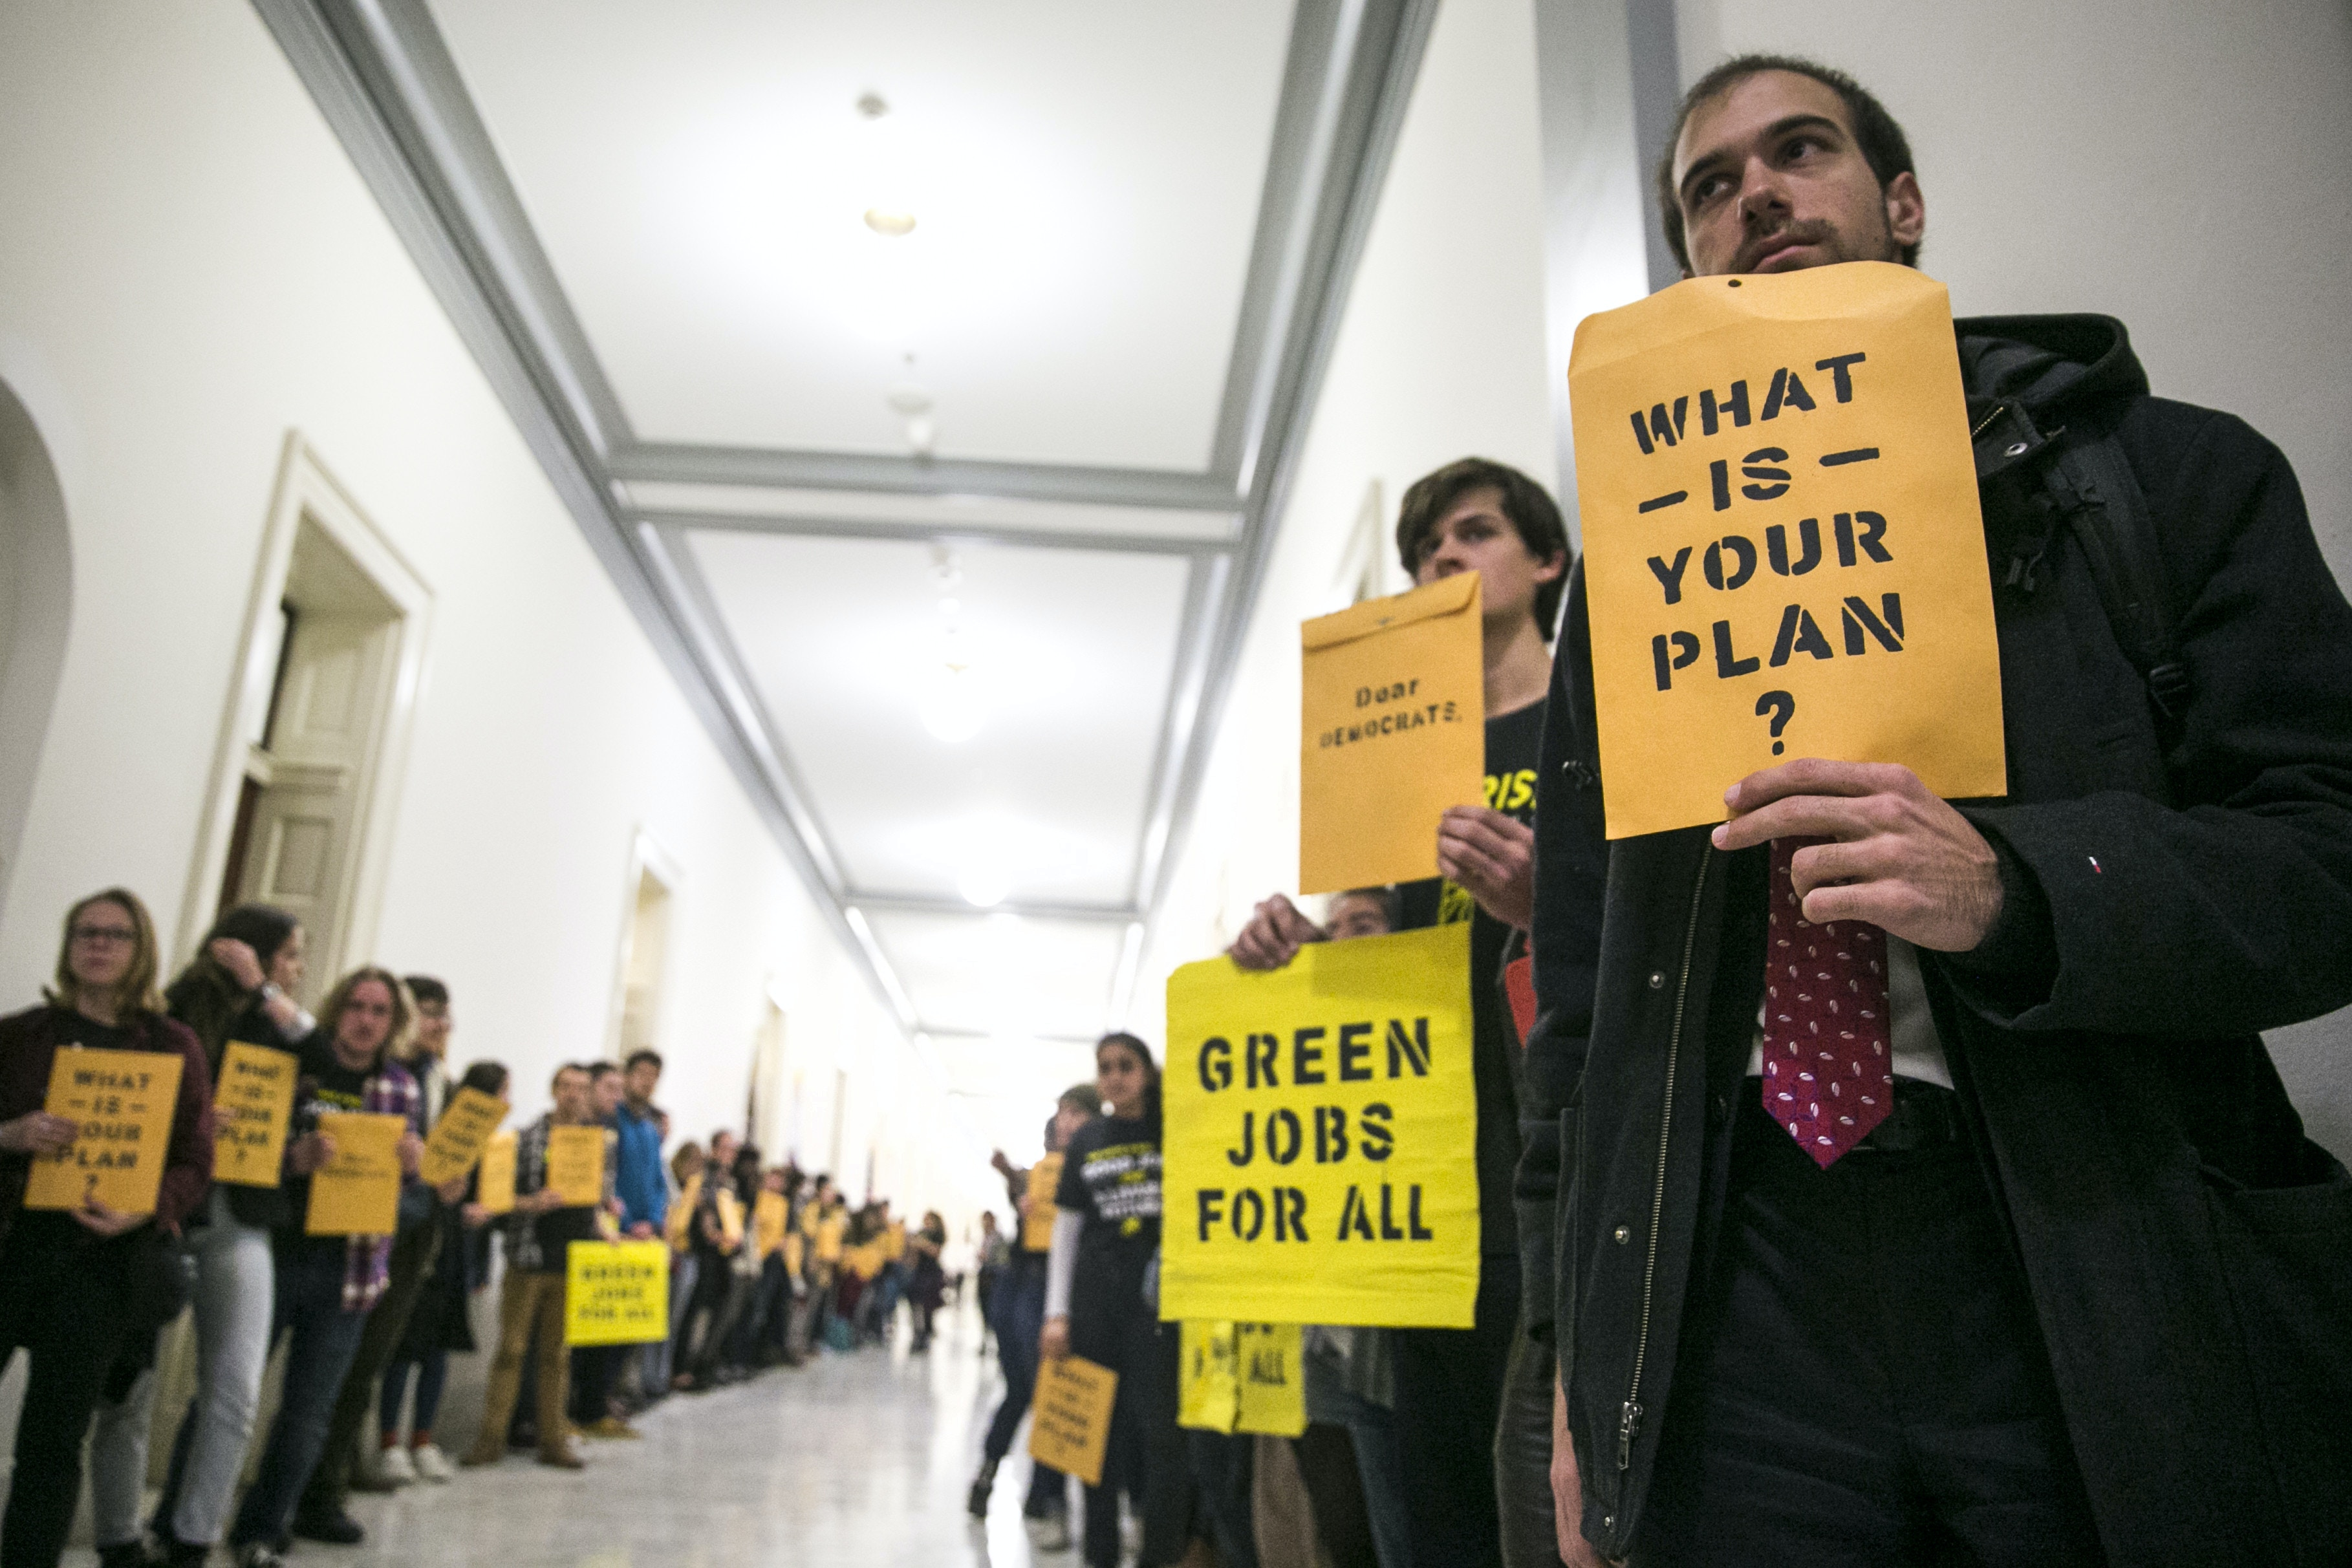 Protesters from the Sunrise Movement gather outside the offices of House Minority Leader Nancy Pelosi (D-Calif.) on Capitol Hill, in Washington, Nov. 13, 2018. Alexandria Ocasio-Cortez, congresswoman-elect from New York, also made a visit to the protest. (Sarah Silbiger/The New York Times)